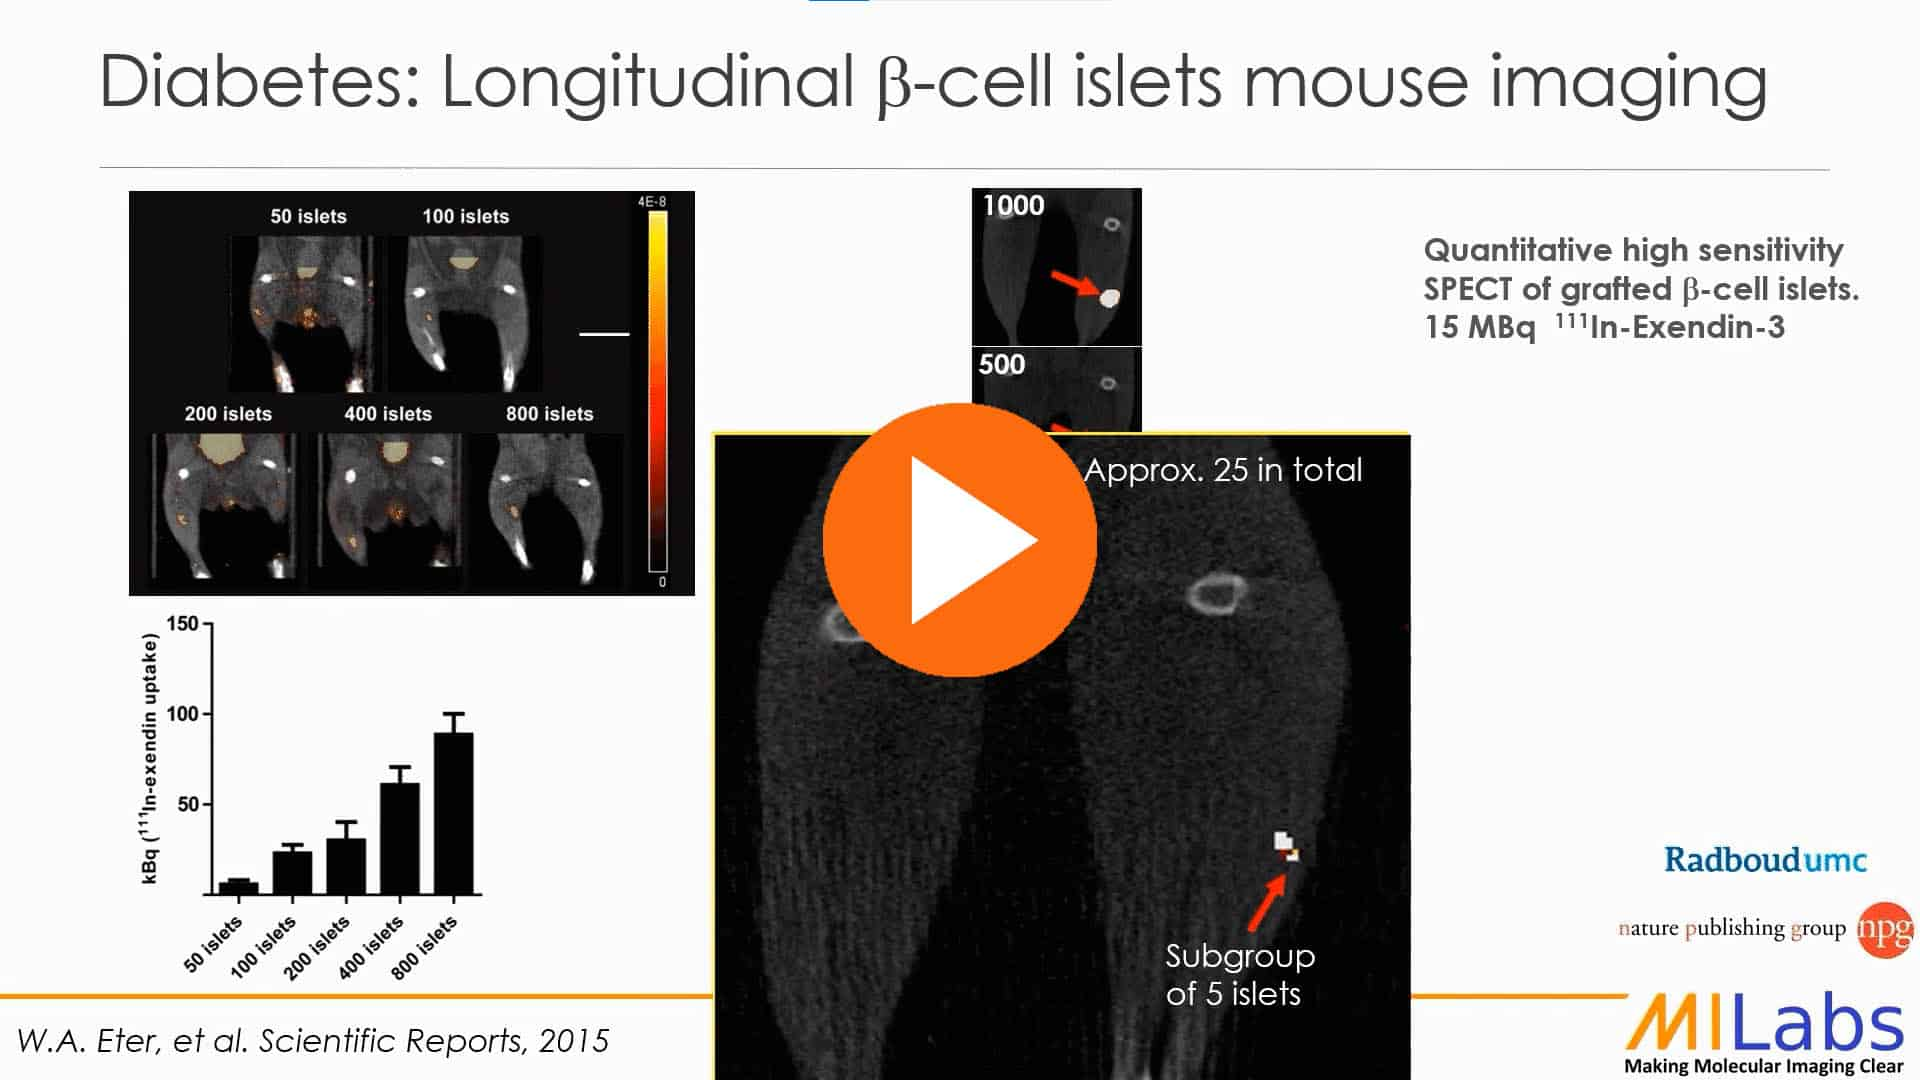 mouse imaging diabetes micro-SPECT